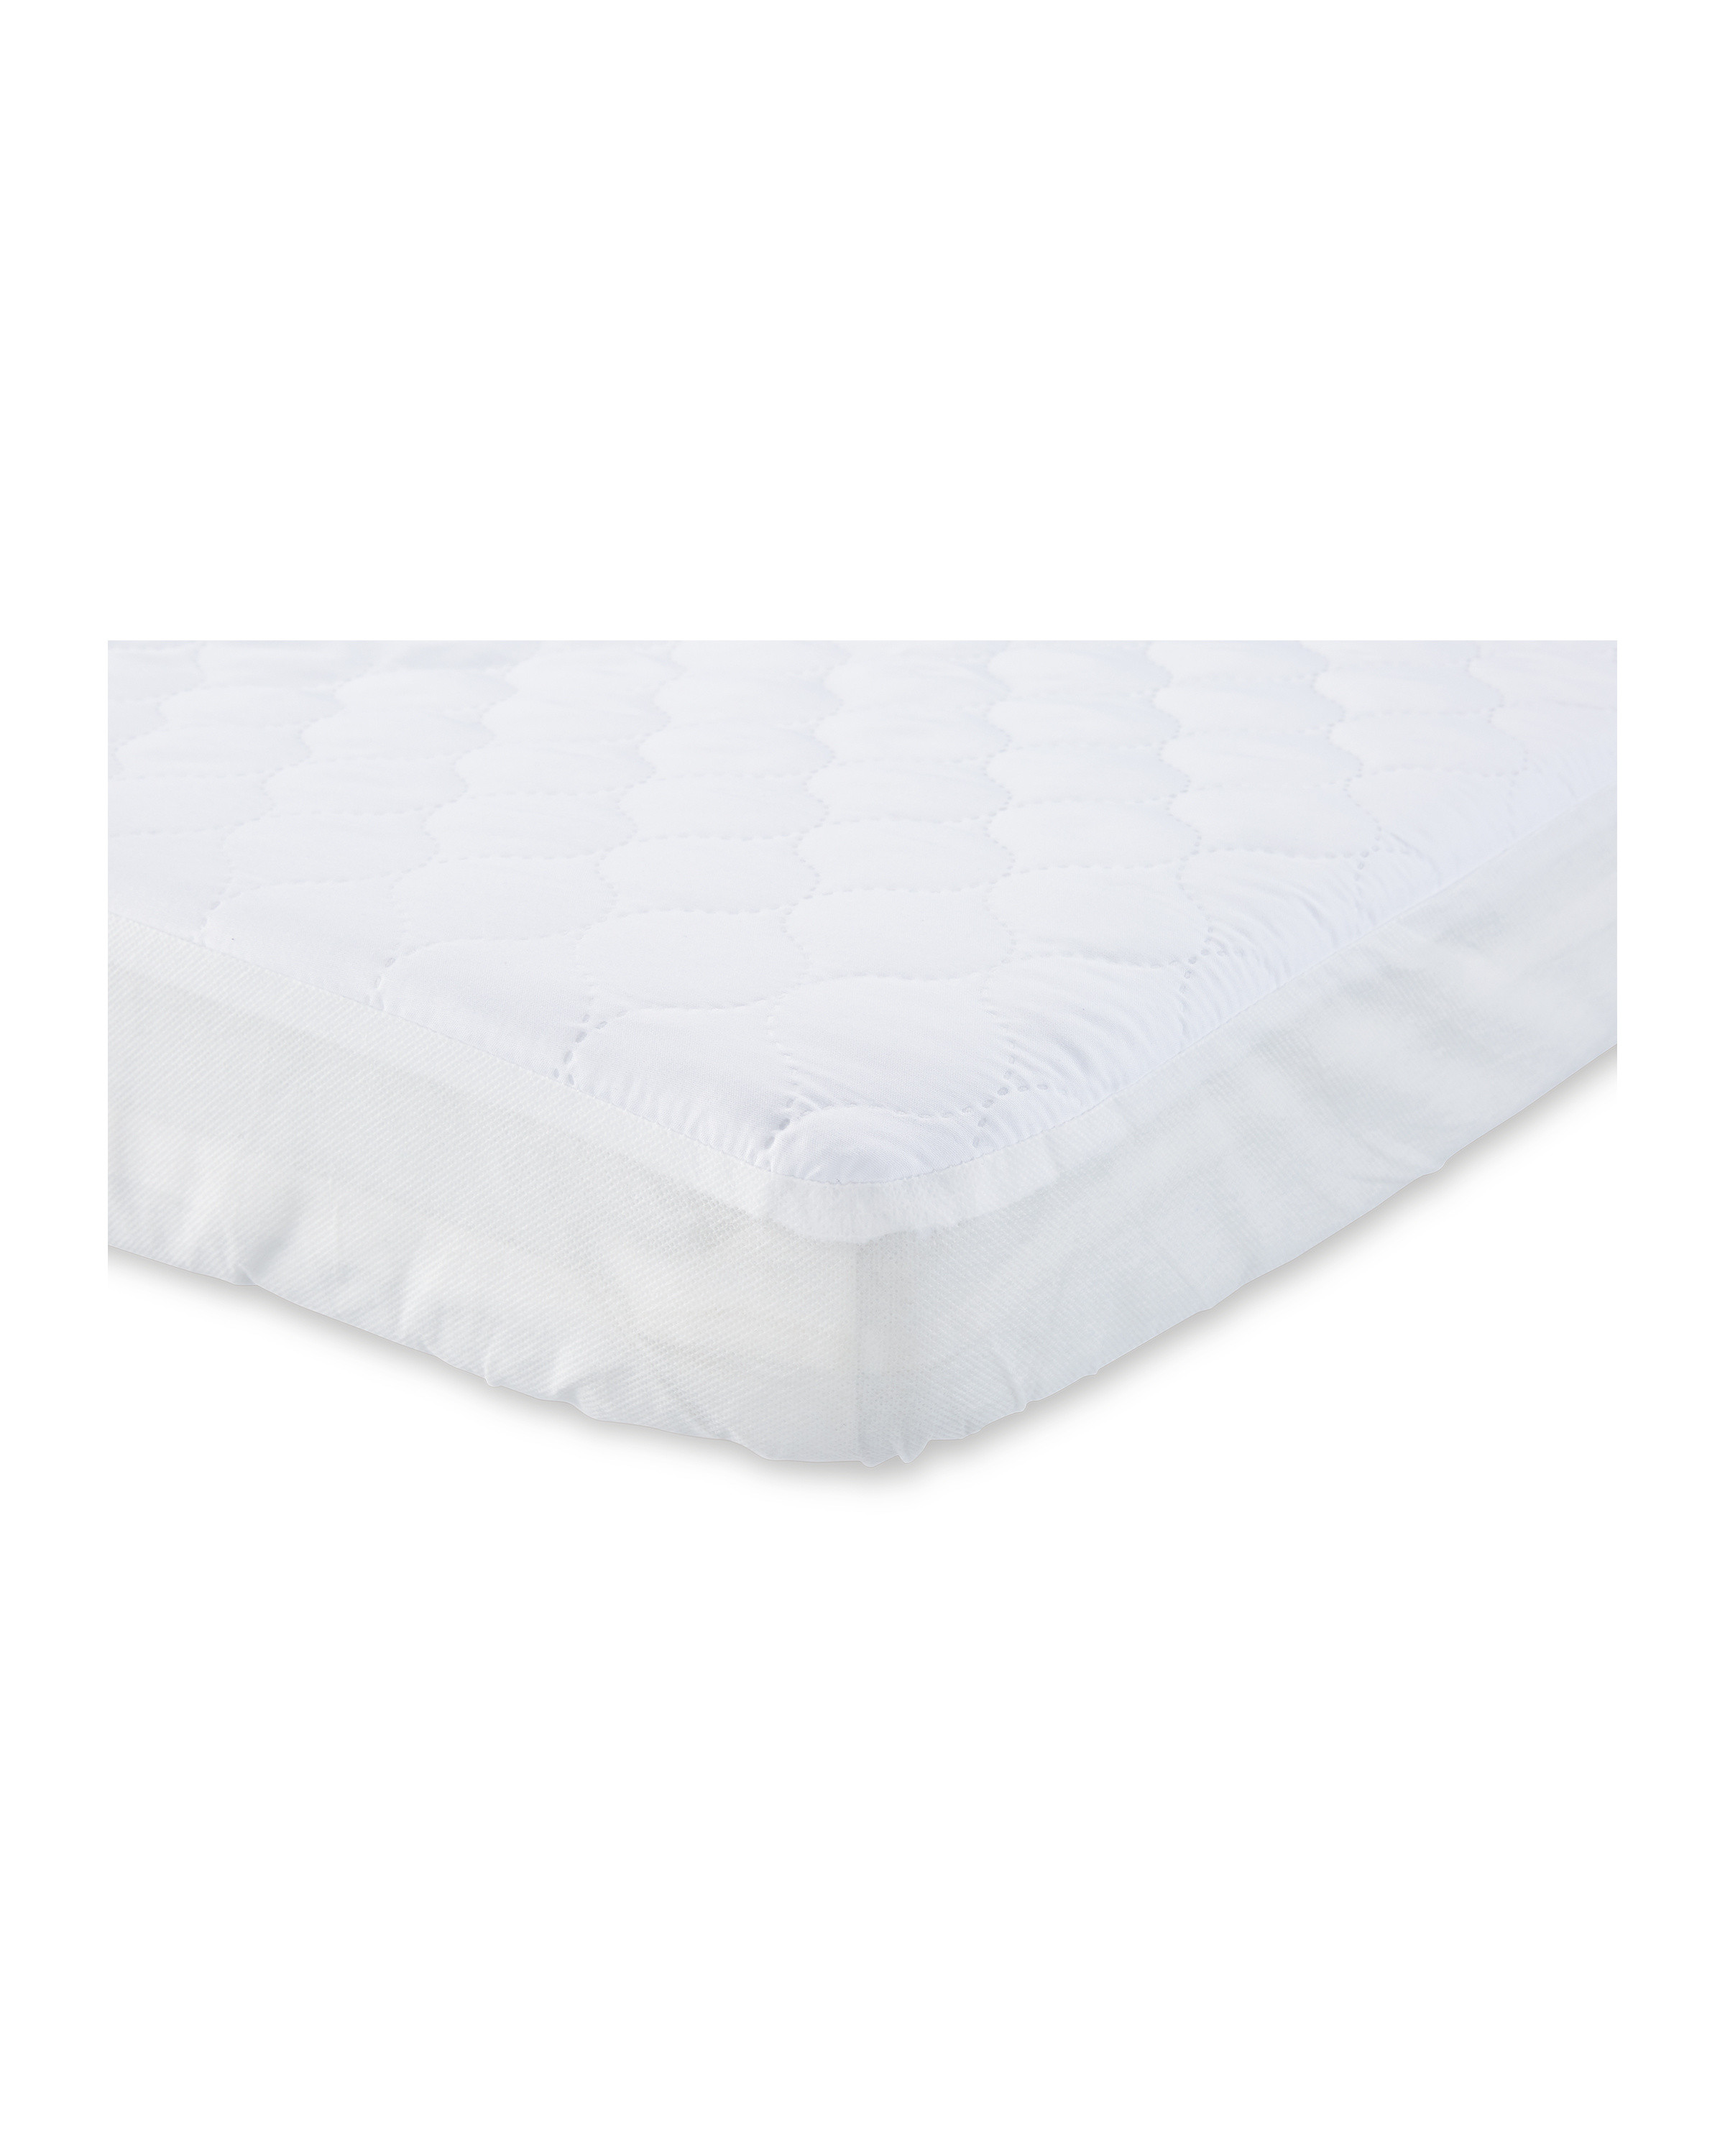 cover pad overstock ultimate protection free orders bath shipping on over mattress beautyrest waterproof product bedding